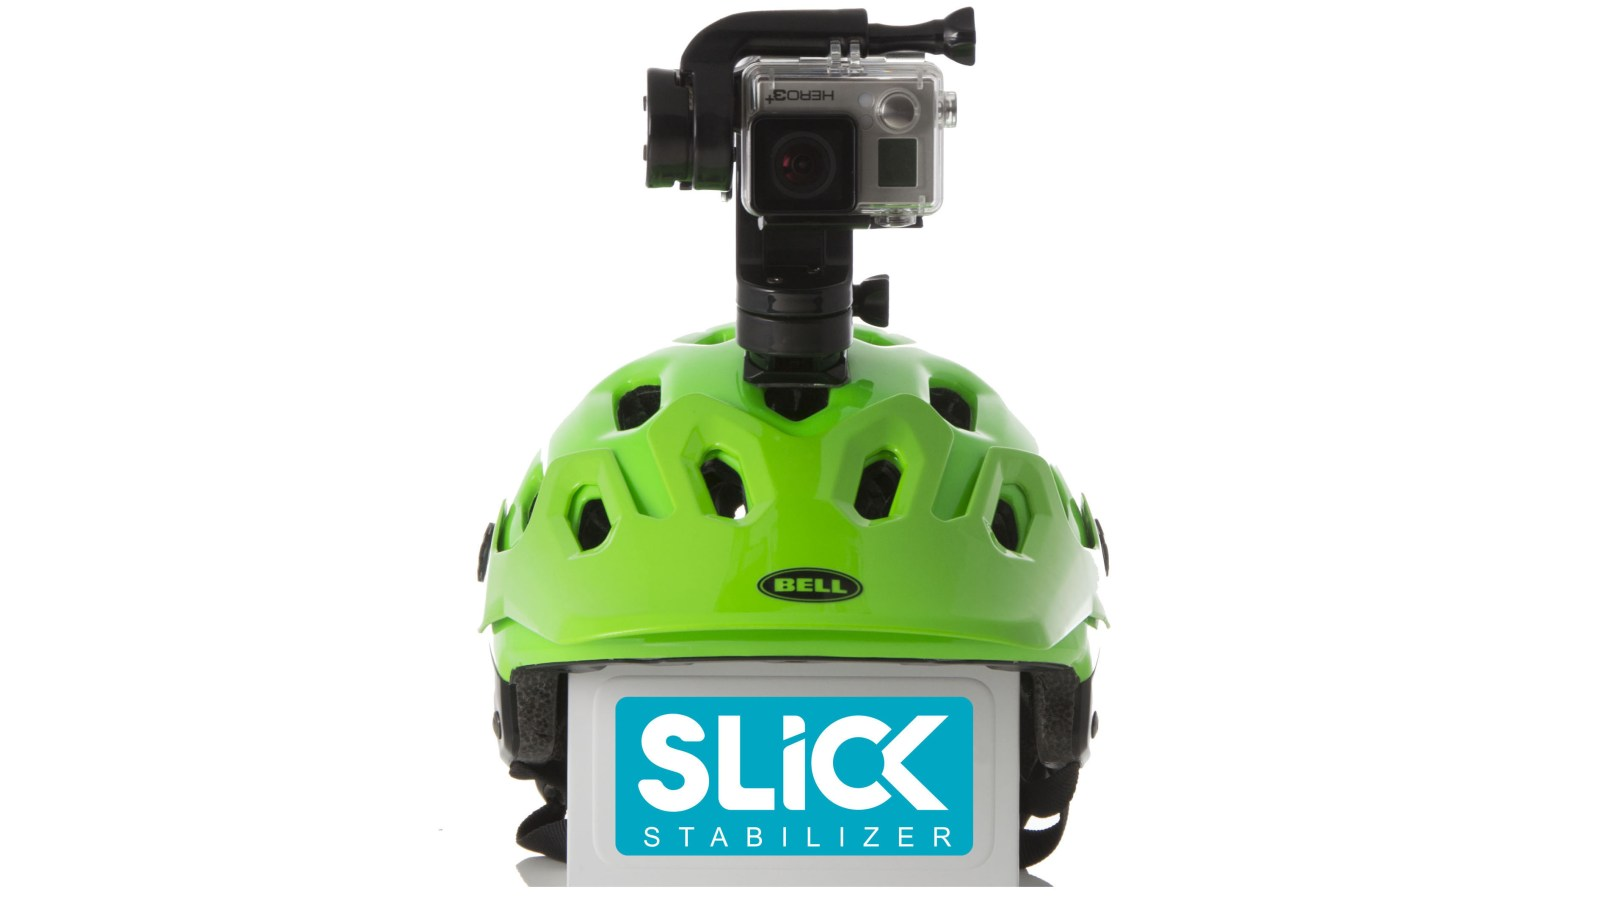 SLICK's motorized mount takes the bumps out of your GoPro videos